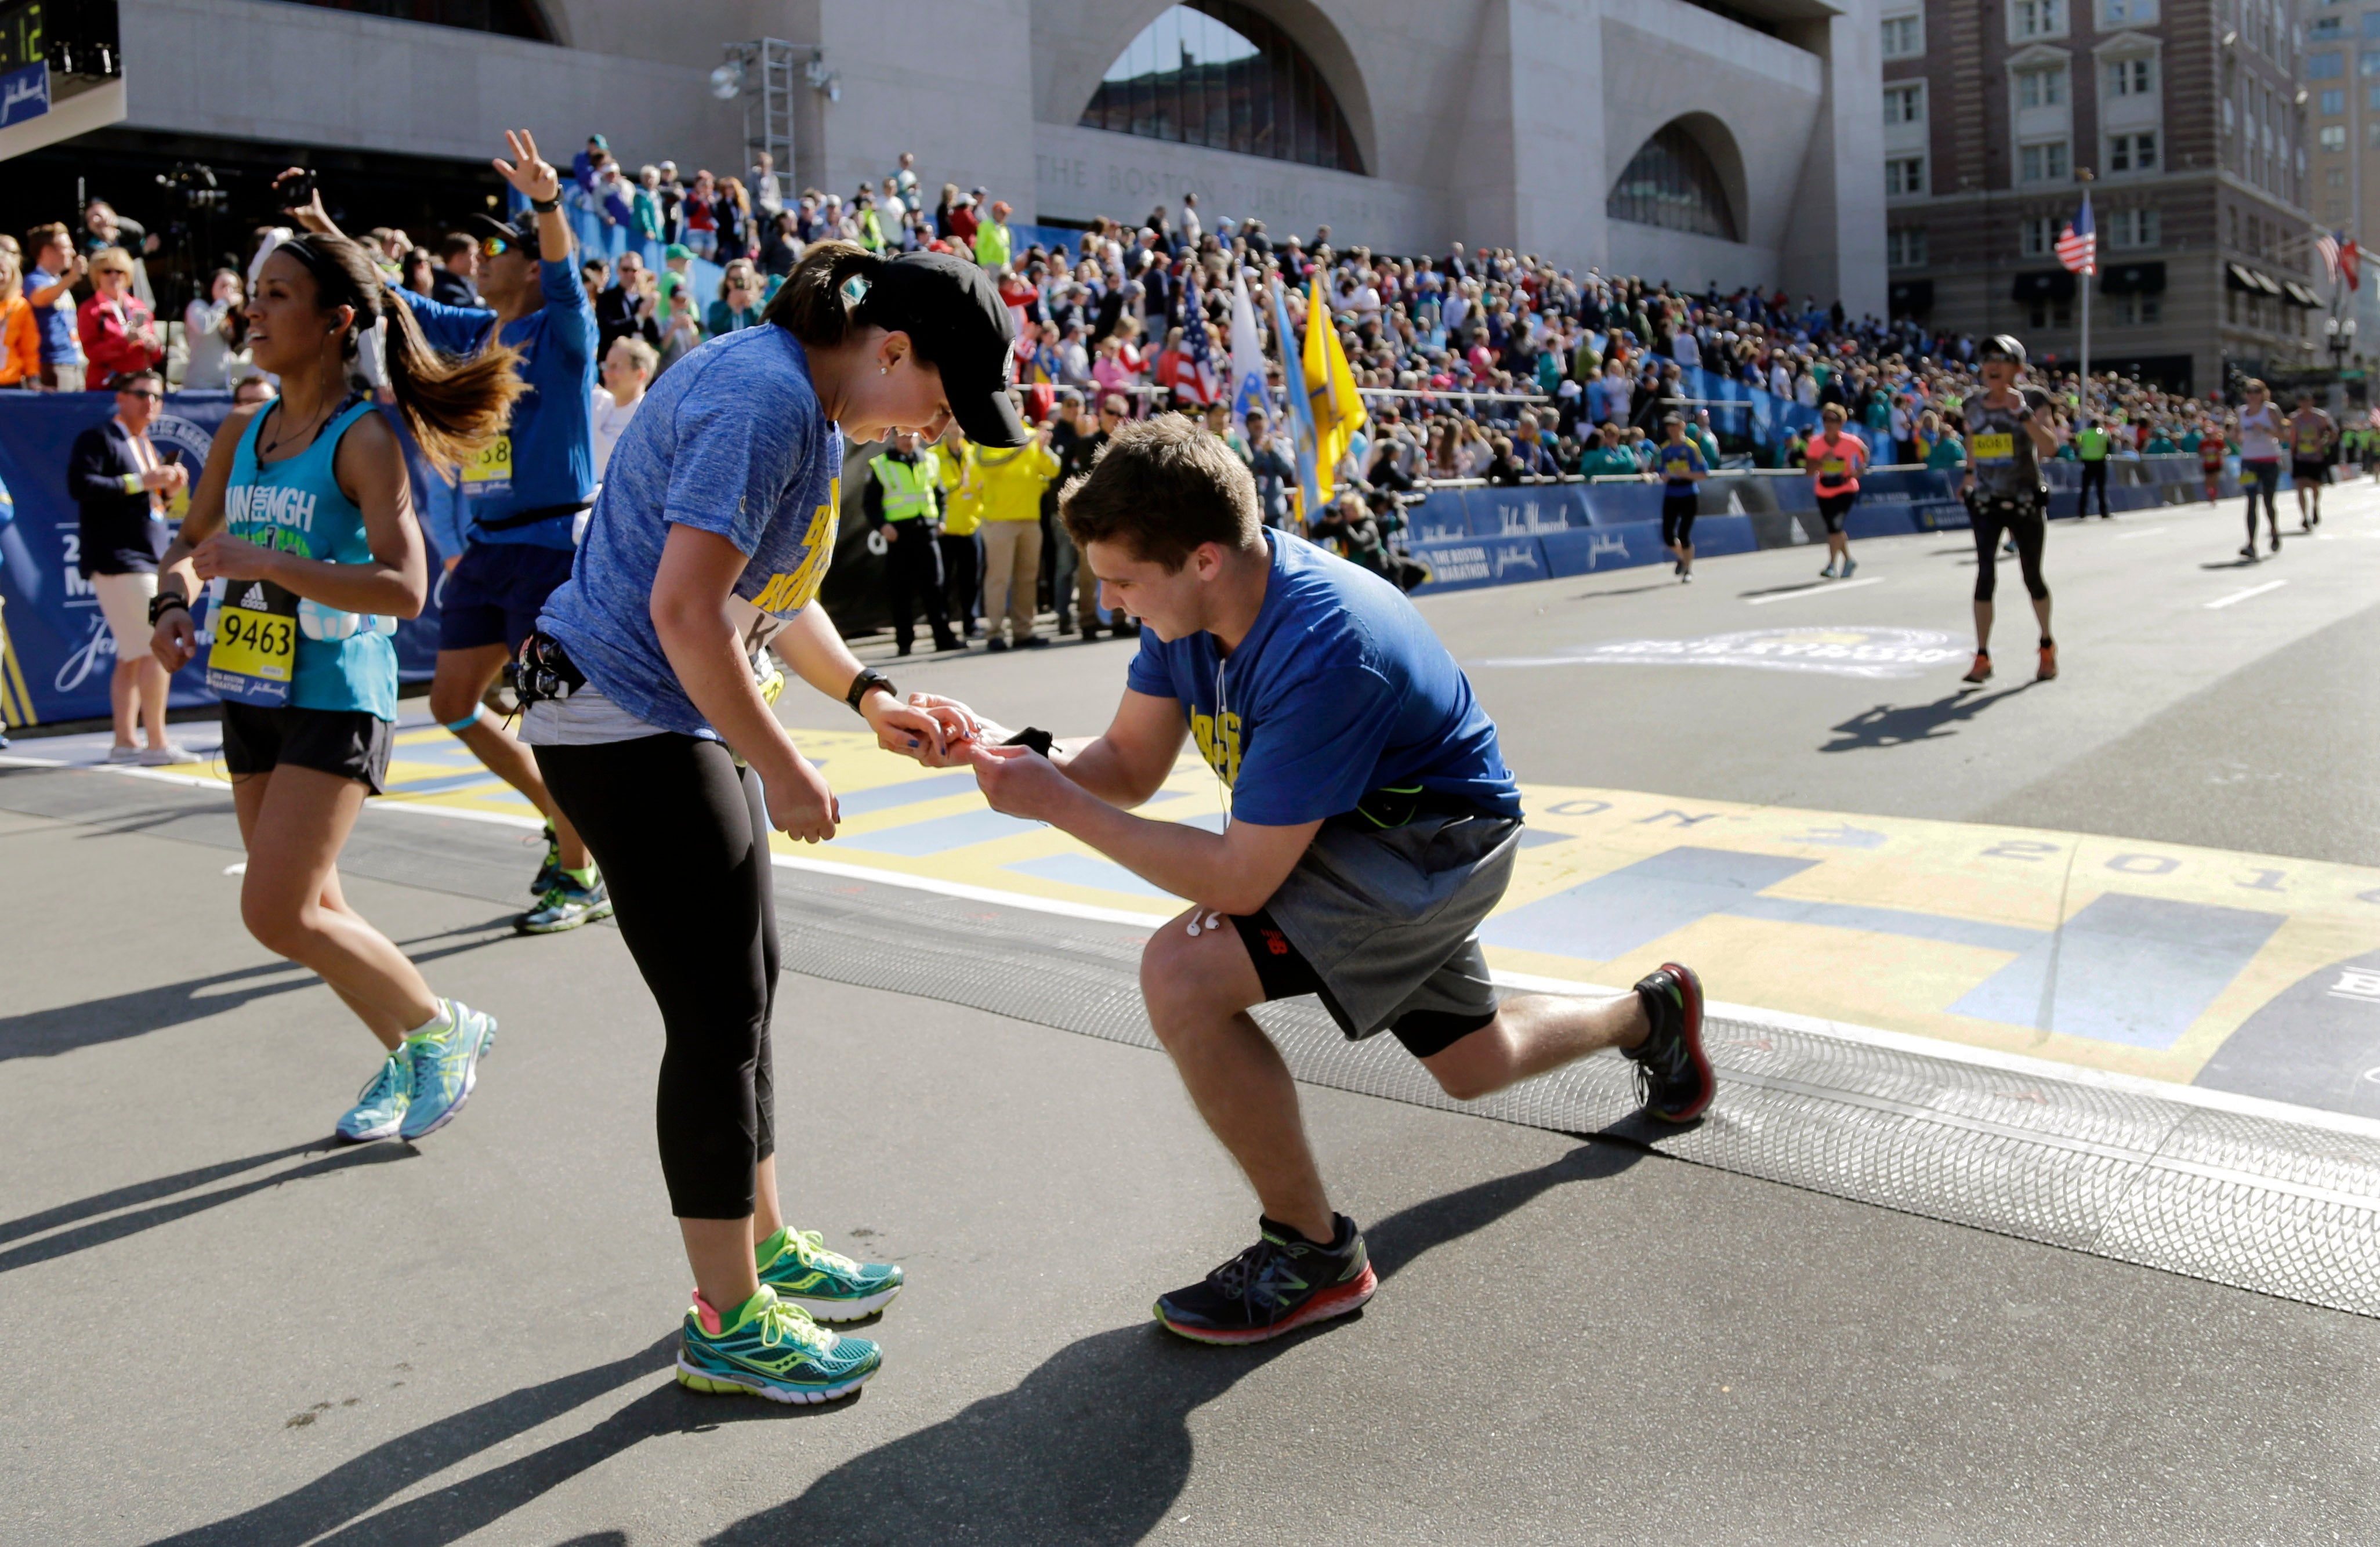 Harrison Moulton, right, slips an engagement ring onto the finger of Kellie Marshall, both of Danvers, Mass., at the finish line after they completed the 120th Boston Marathon on Monday, April 18, 2016, in Boston.